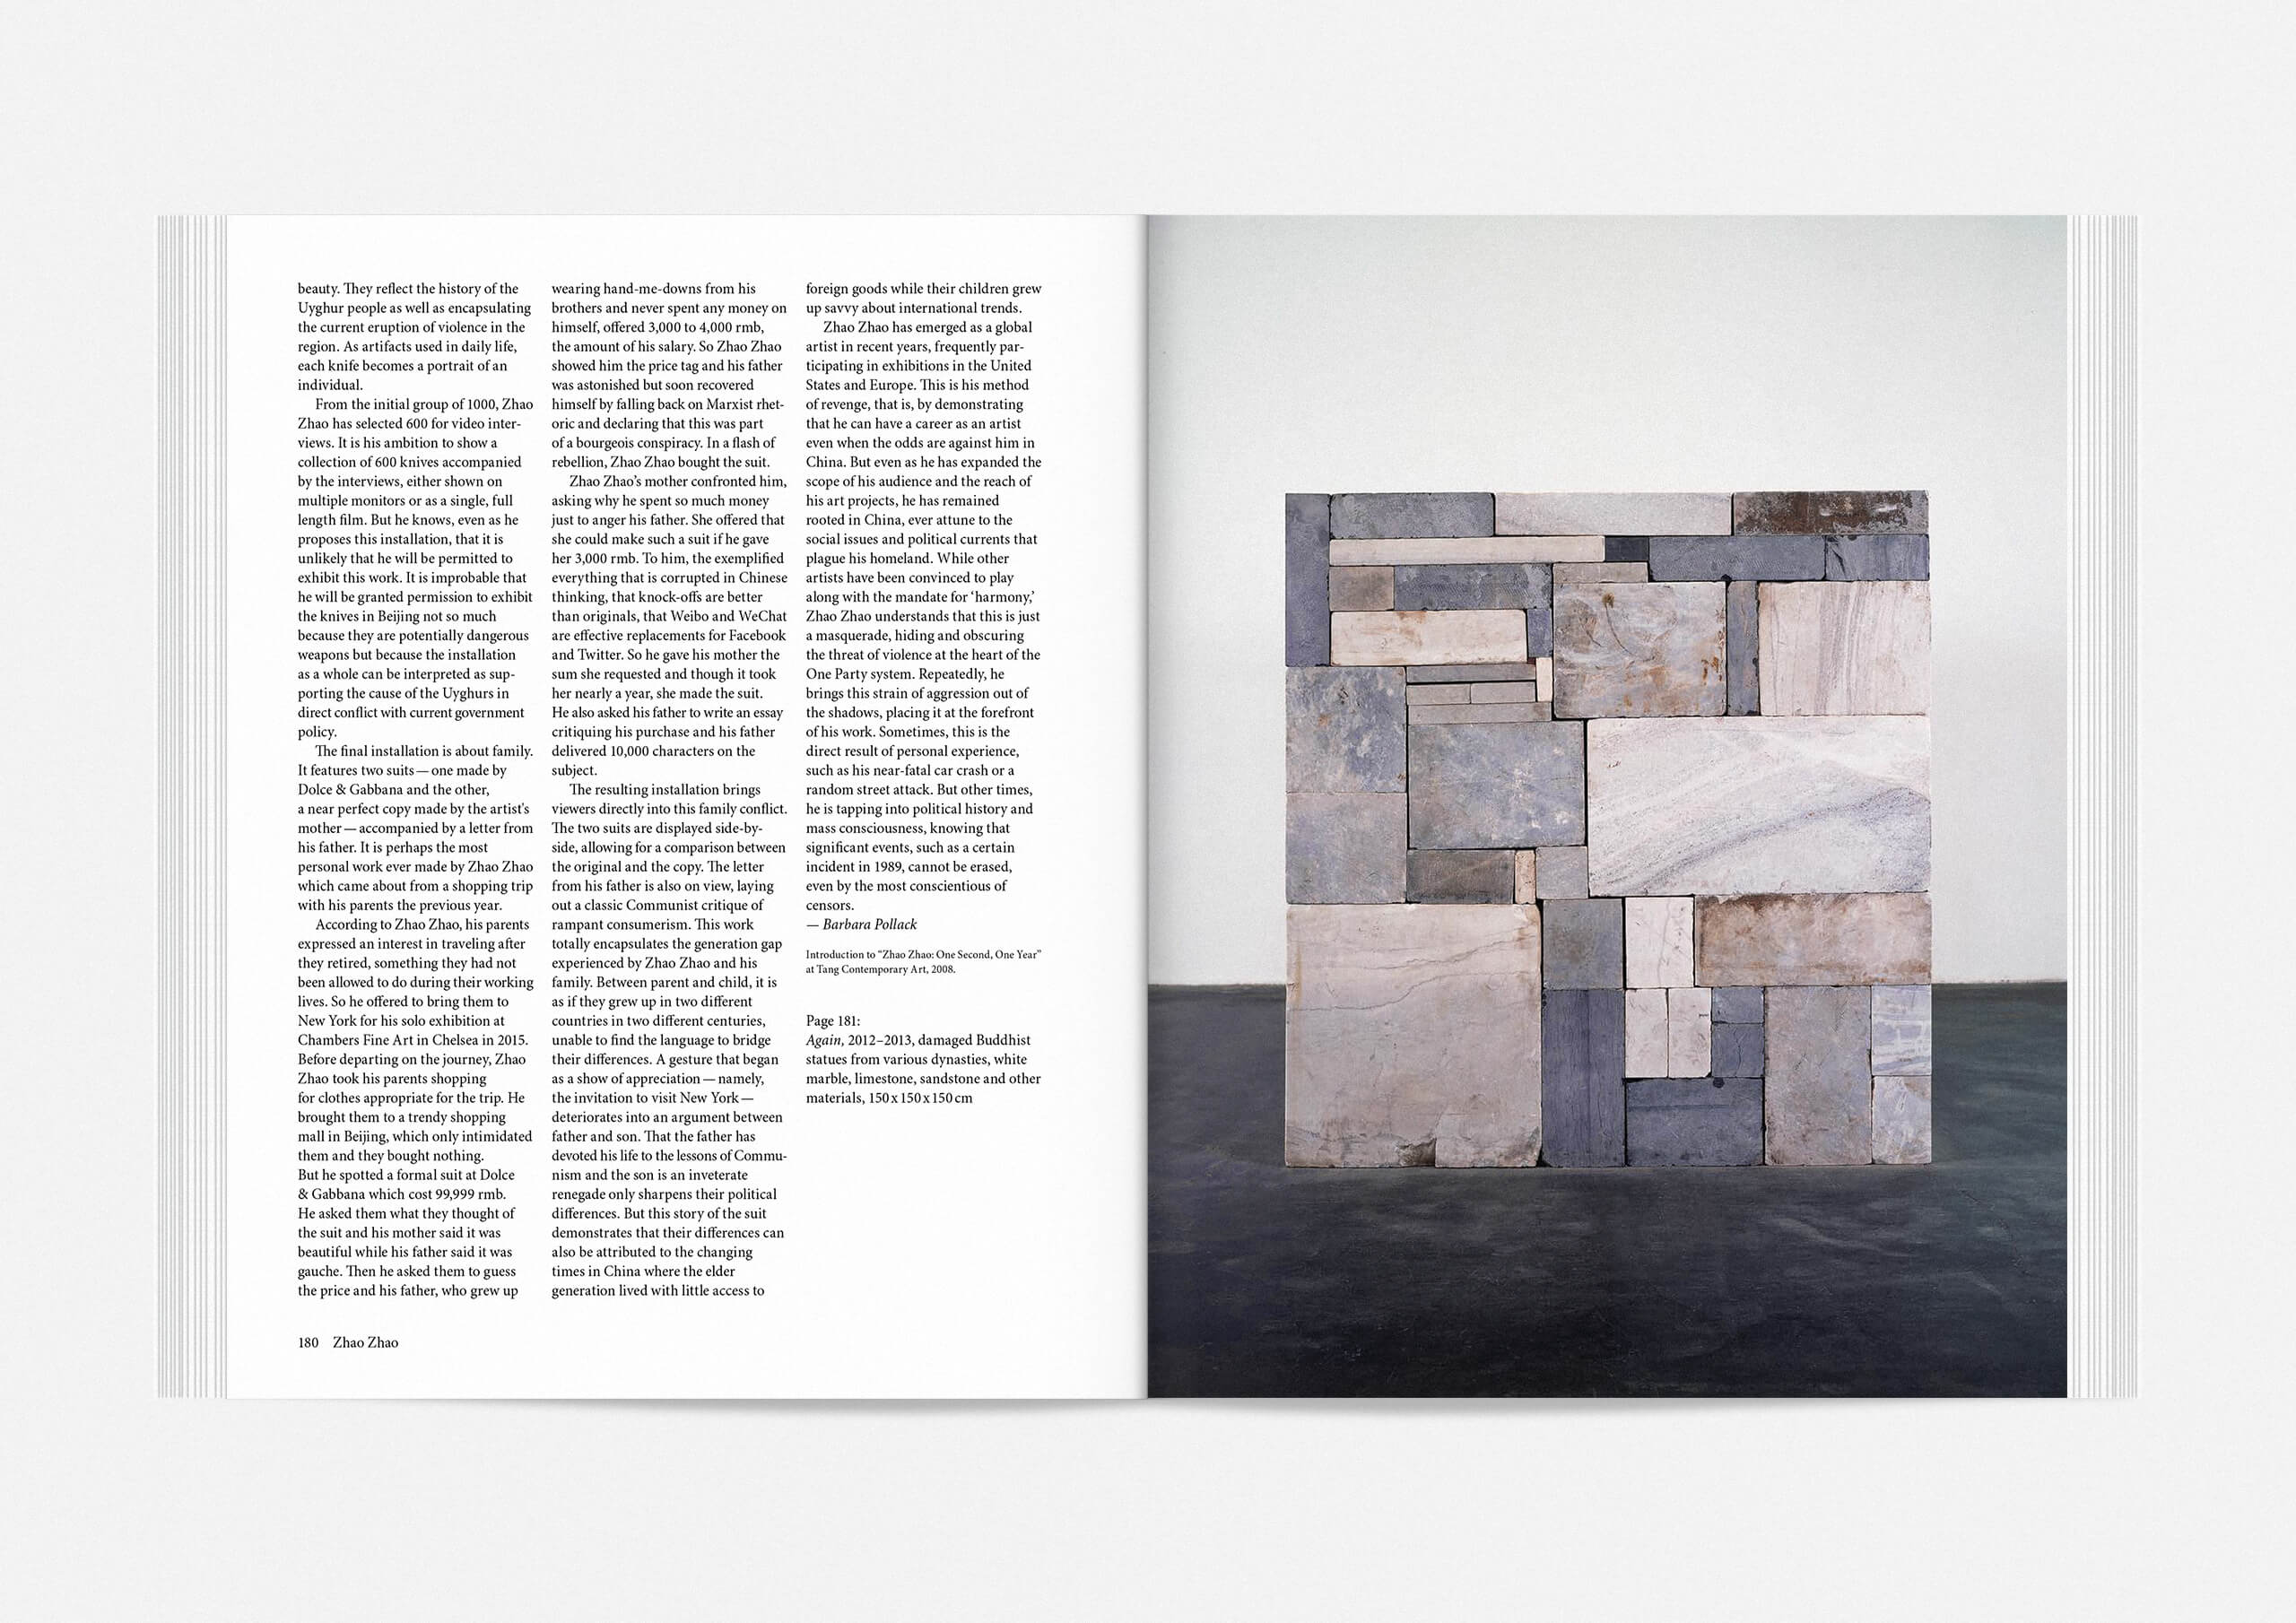 https://neuegestaltung.de/media/pages/clients/protocollum-issue-no-05/a9c7644d86-1597415146/protocollum-5-page-180181-ng.jpg